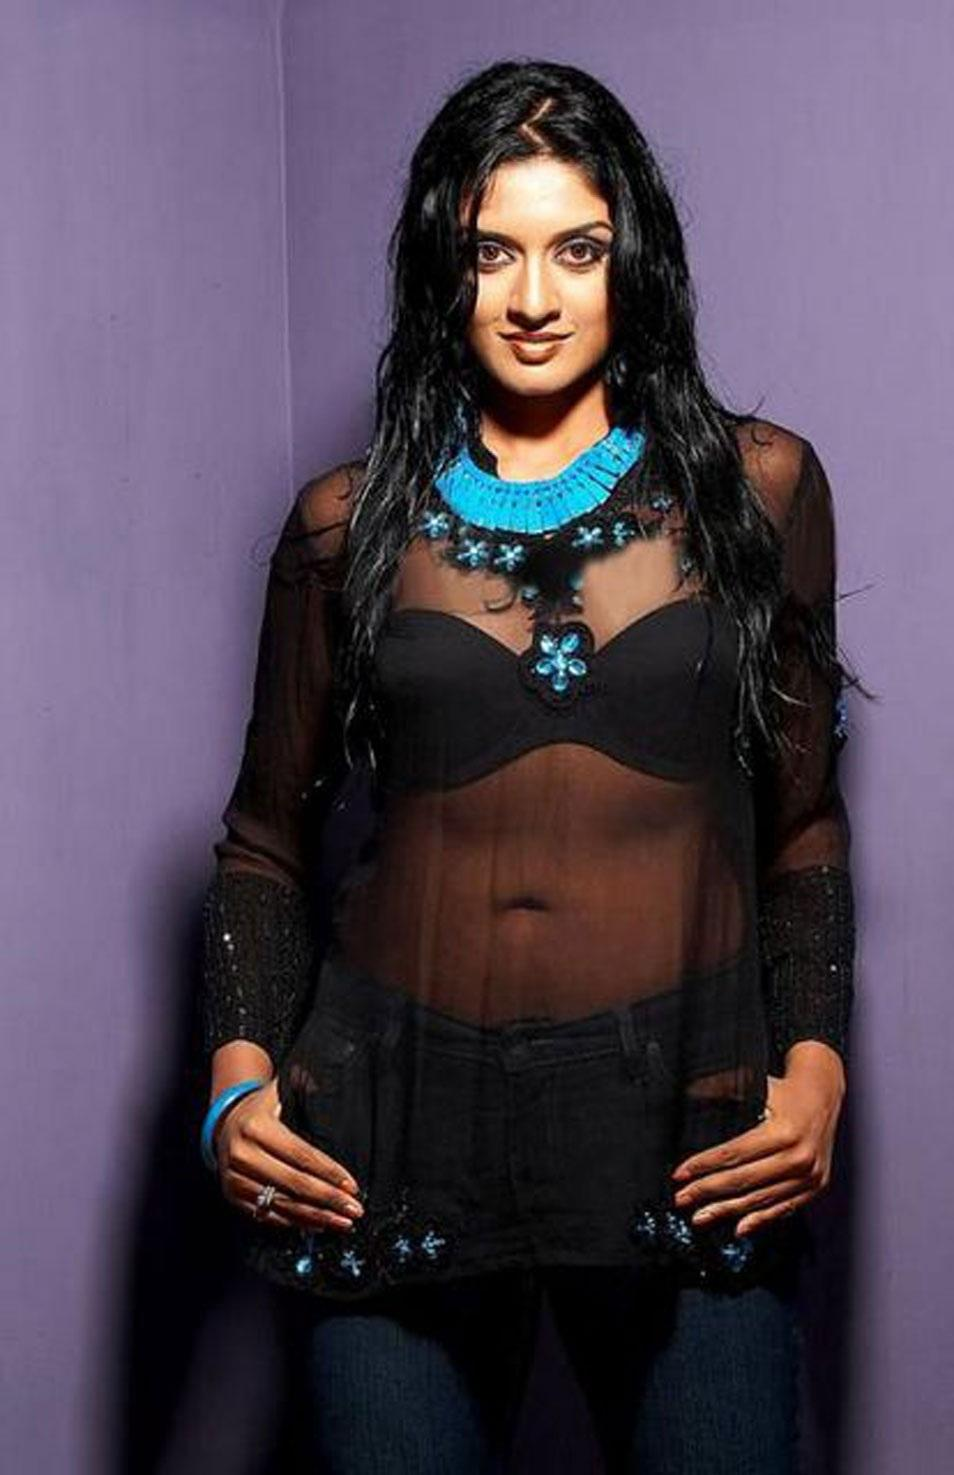 Vimala Raman hot in see though tops